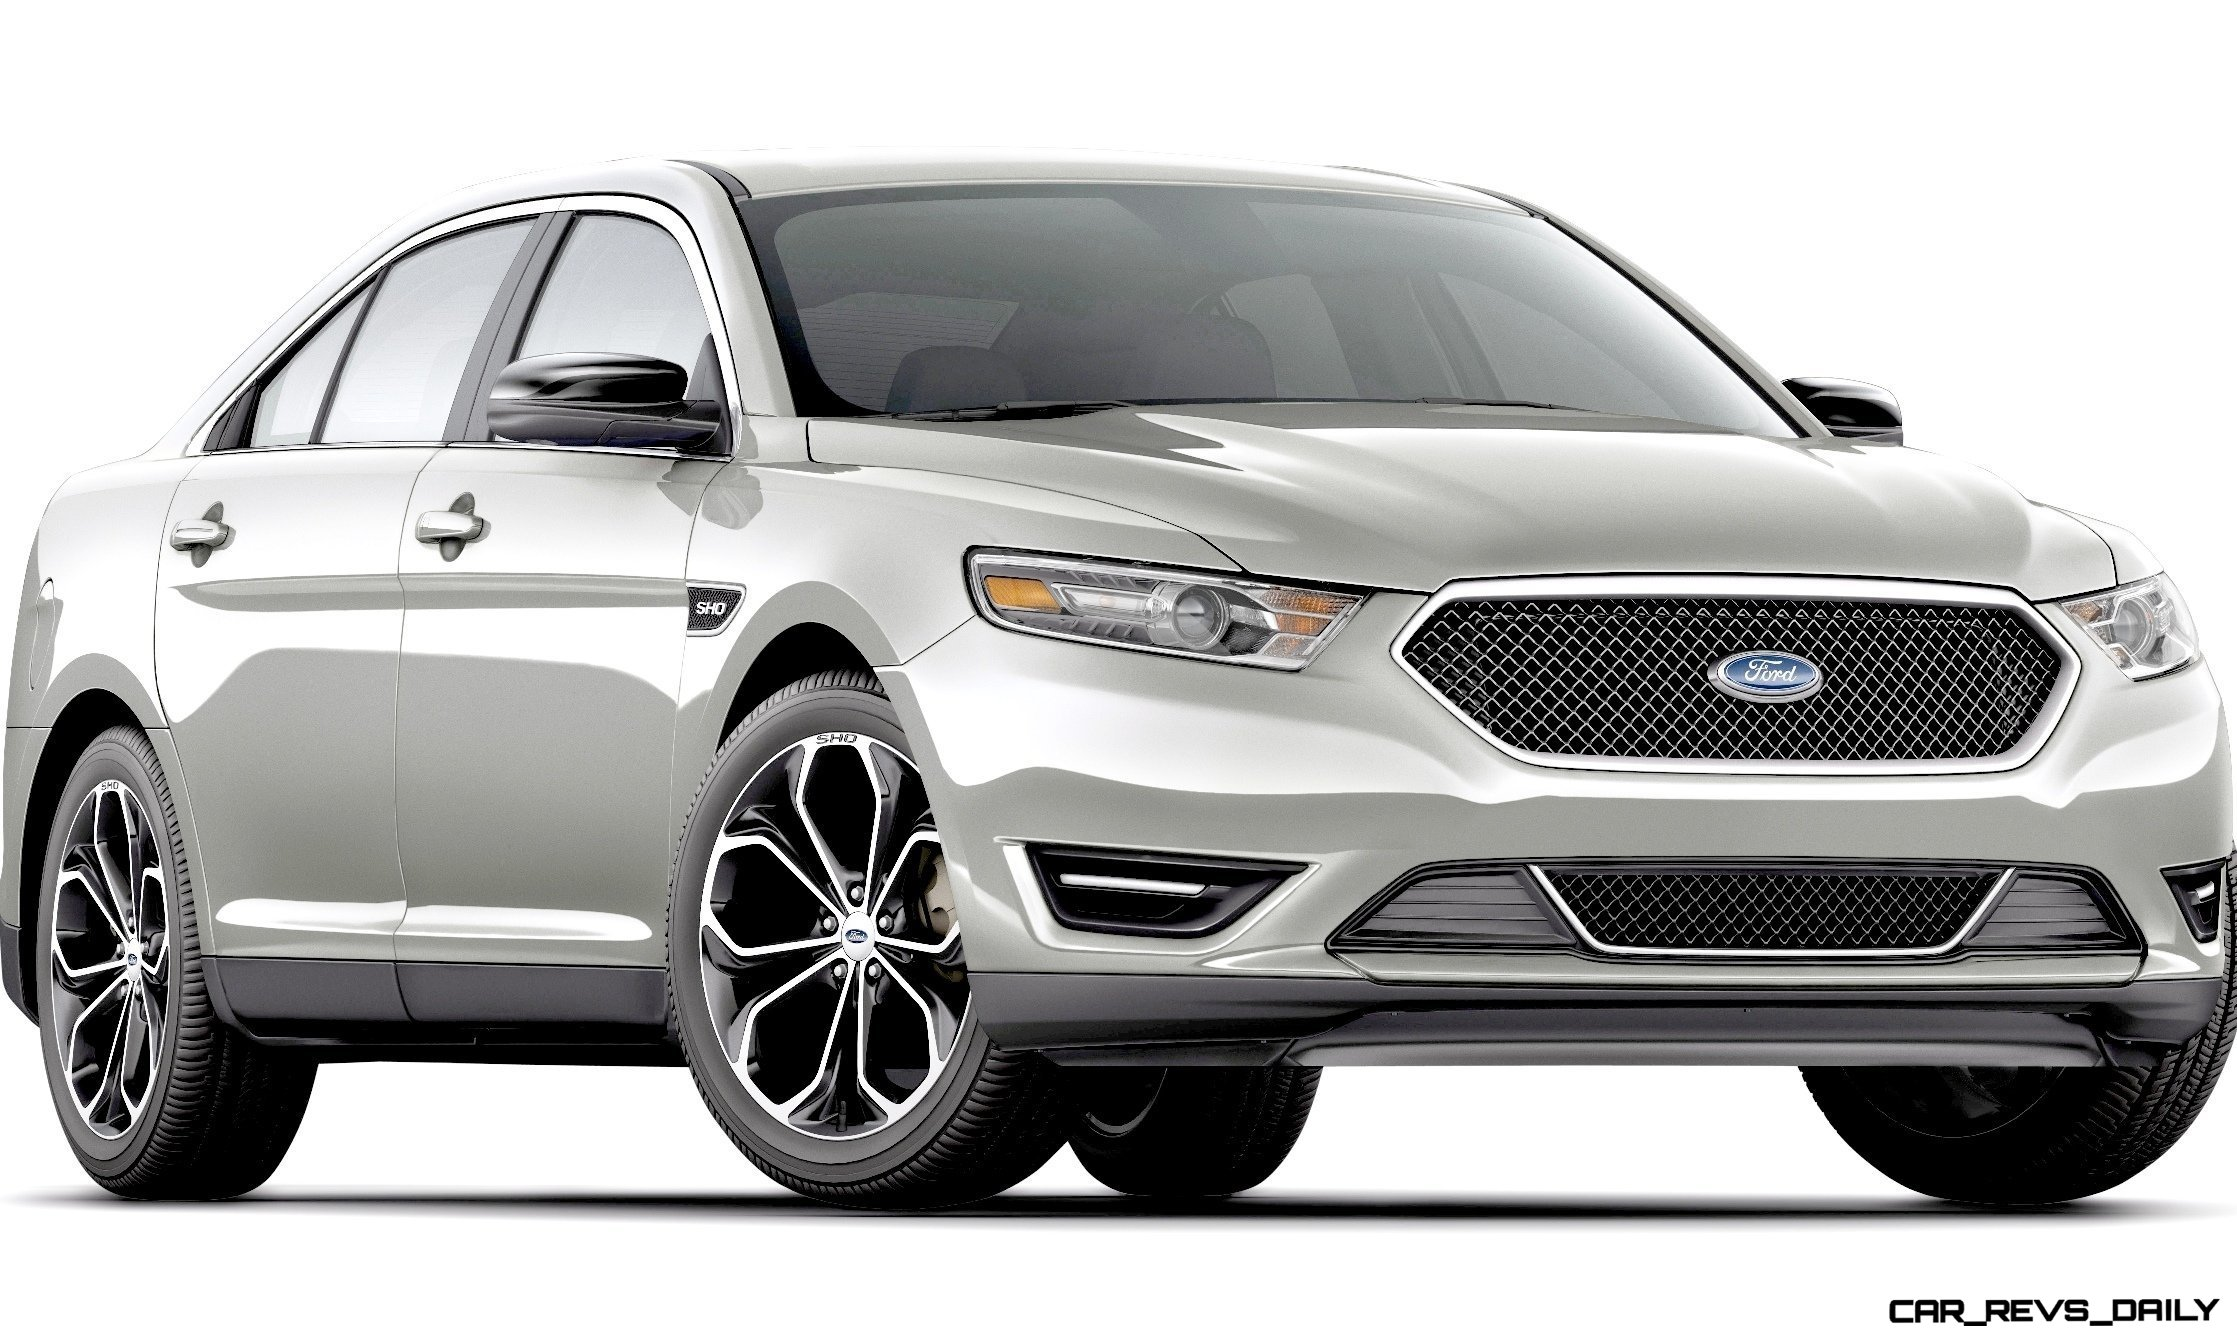 2014 Ford Escape Mpg >> Best of Awards - 2014 Ford Taurus and Taurus SHO - Biggest Trunk and EcoBoost Turbo Innovator